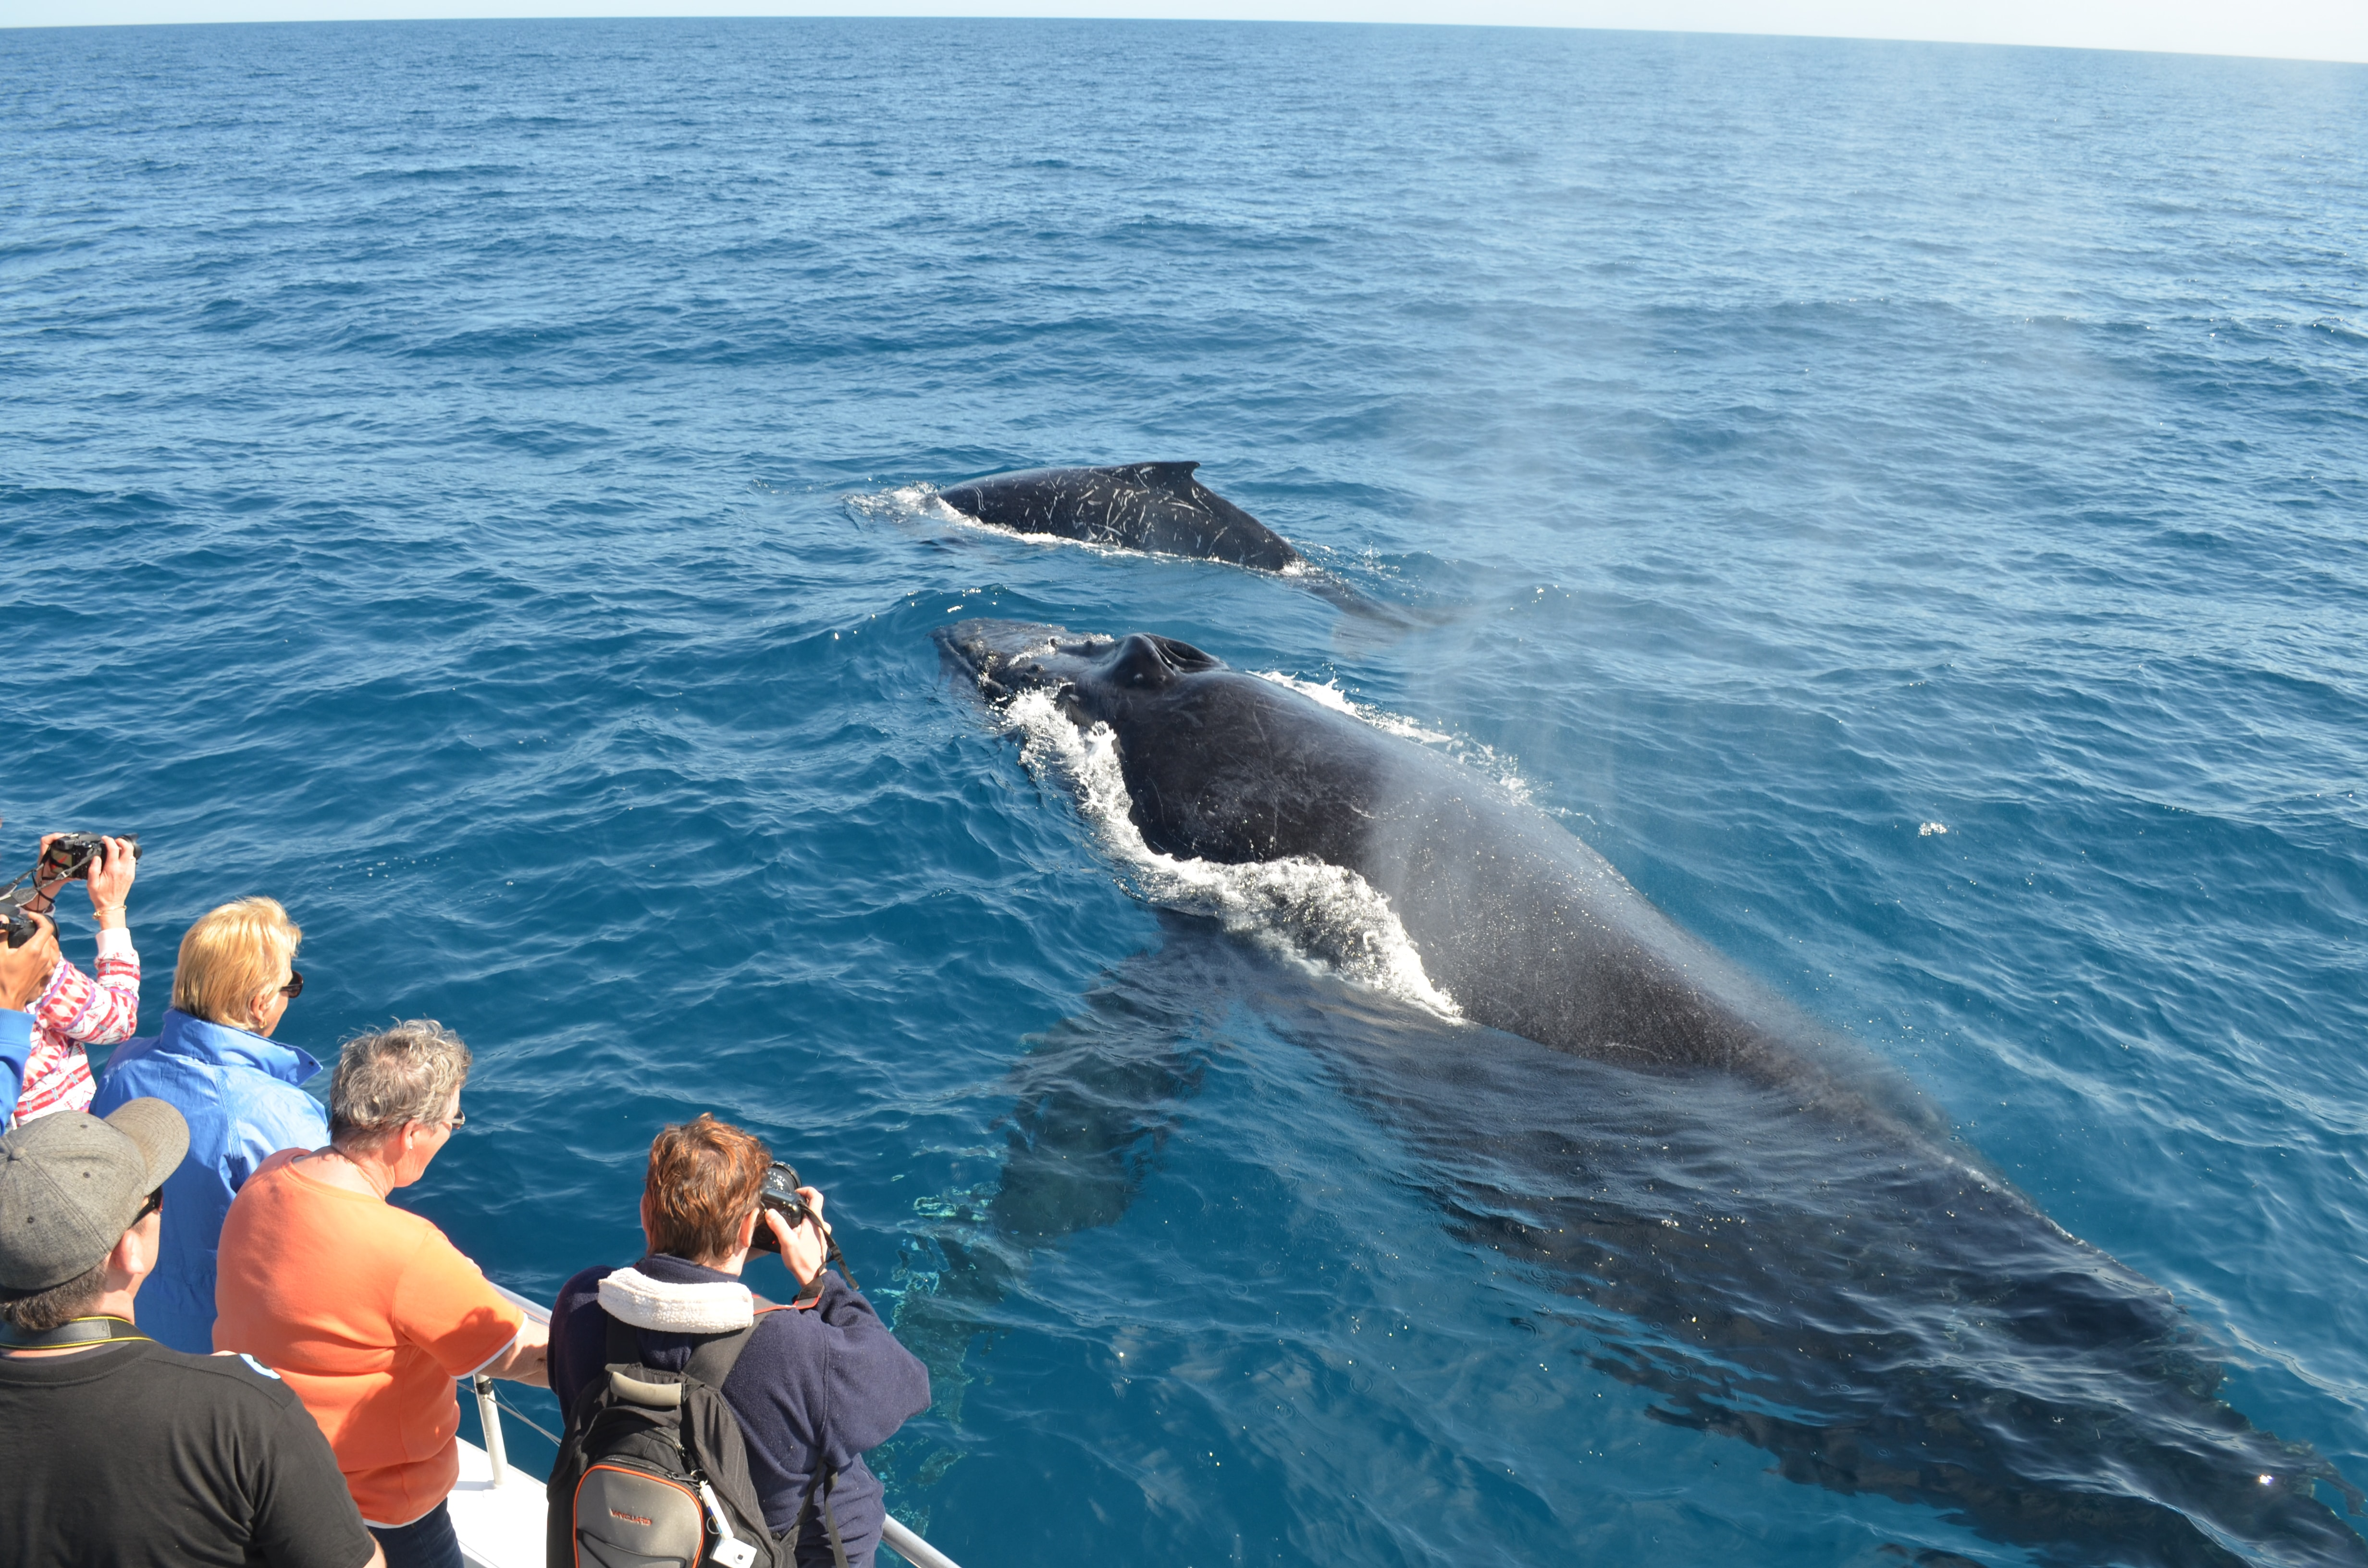 The Best Places In The World To Whale Watch: Australia